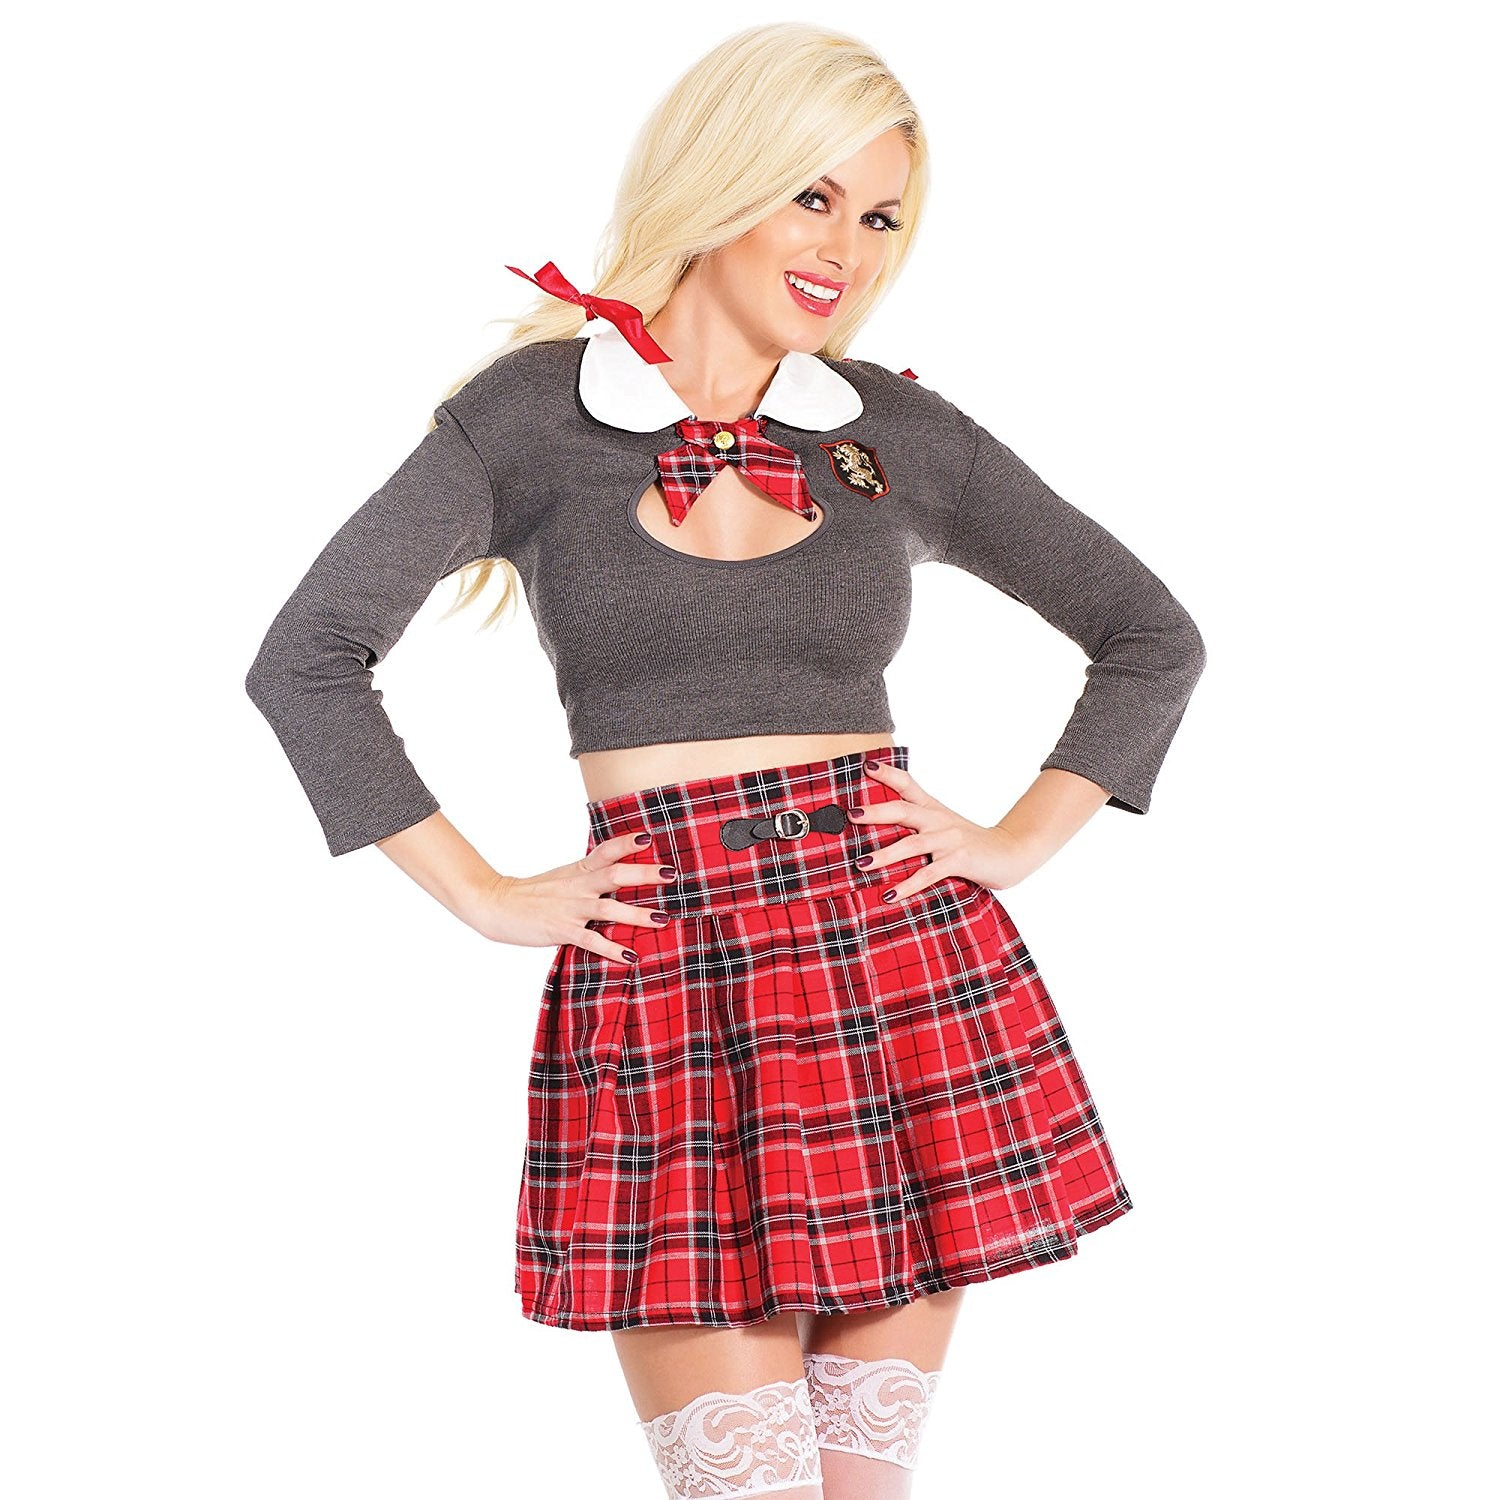 School Girl Costume (M6205)